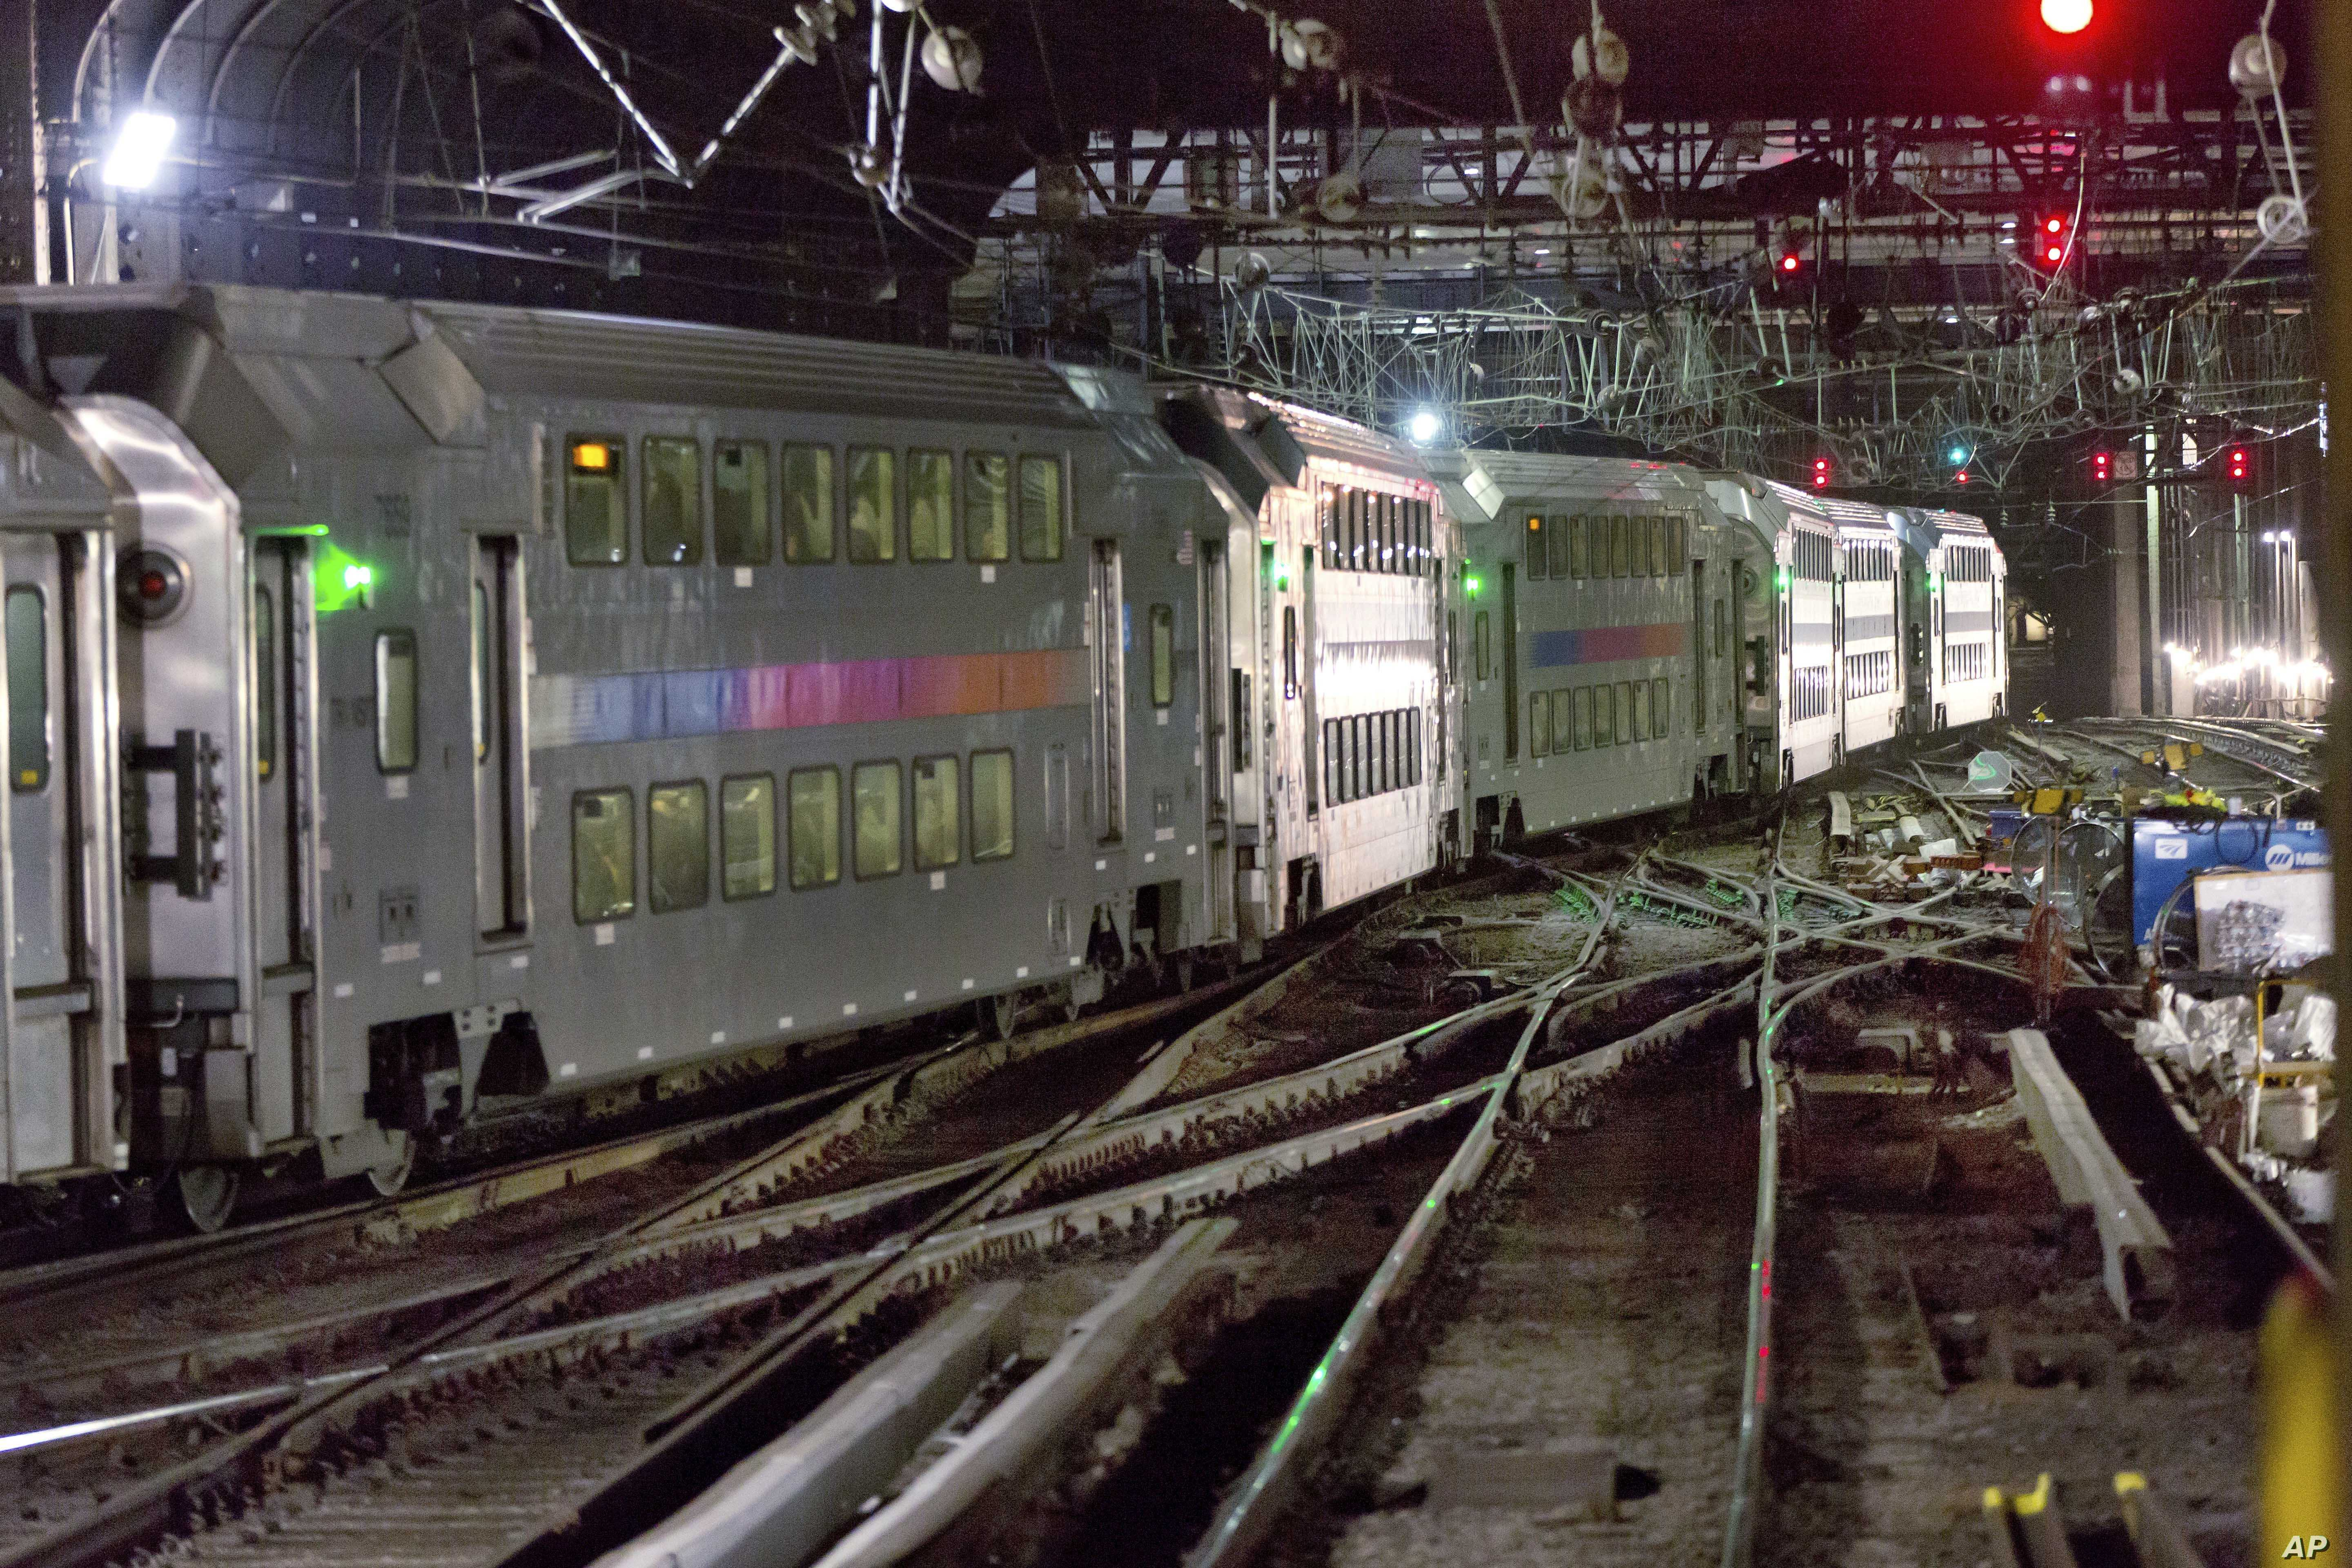 FILE - A New Jersey Transit train traverses the tracks in New York's Penn Station, July 25, 2017. President Donald Trump opposes funding for a Hudson River tunnel and rail project that's important to Senate Minority Leader Chuck Schumer, a New York D...